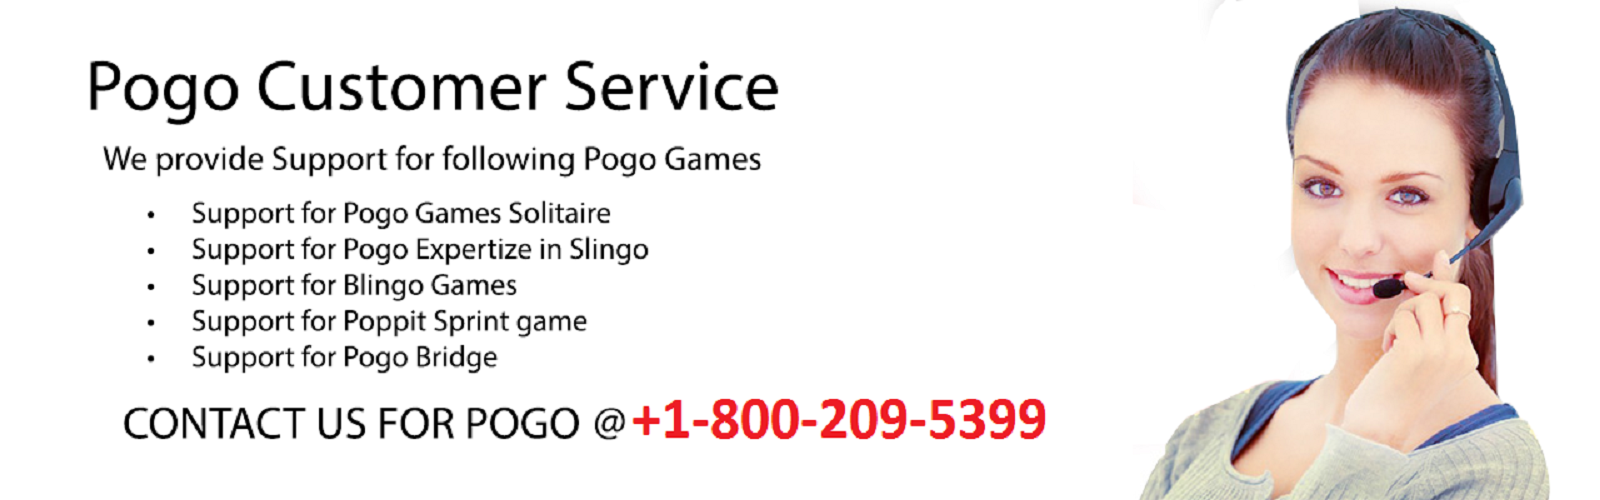 Pogo Game Support Number